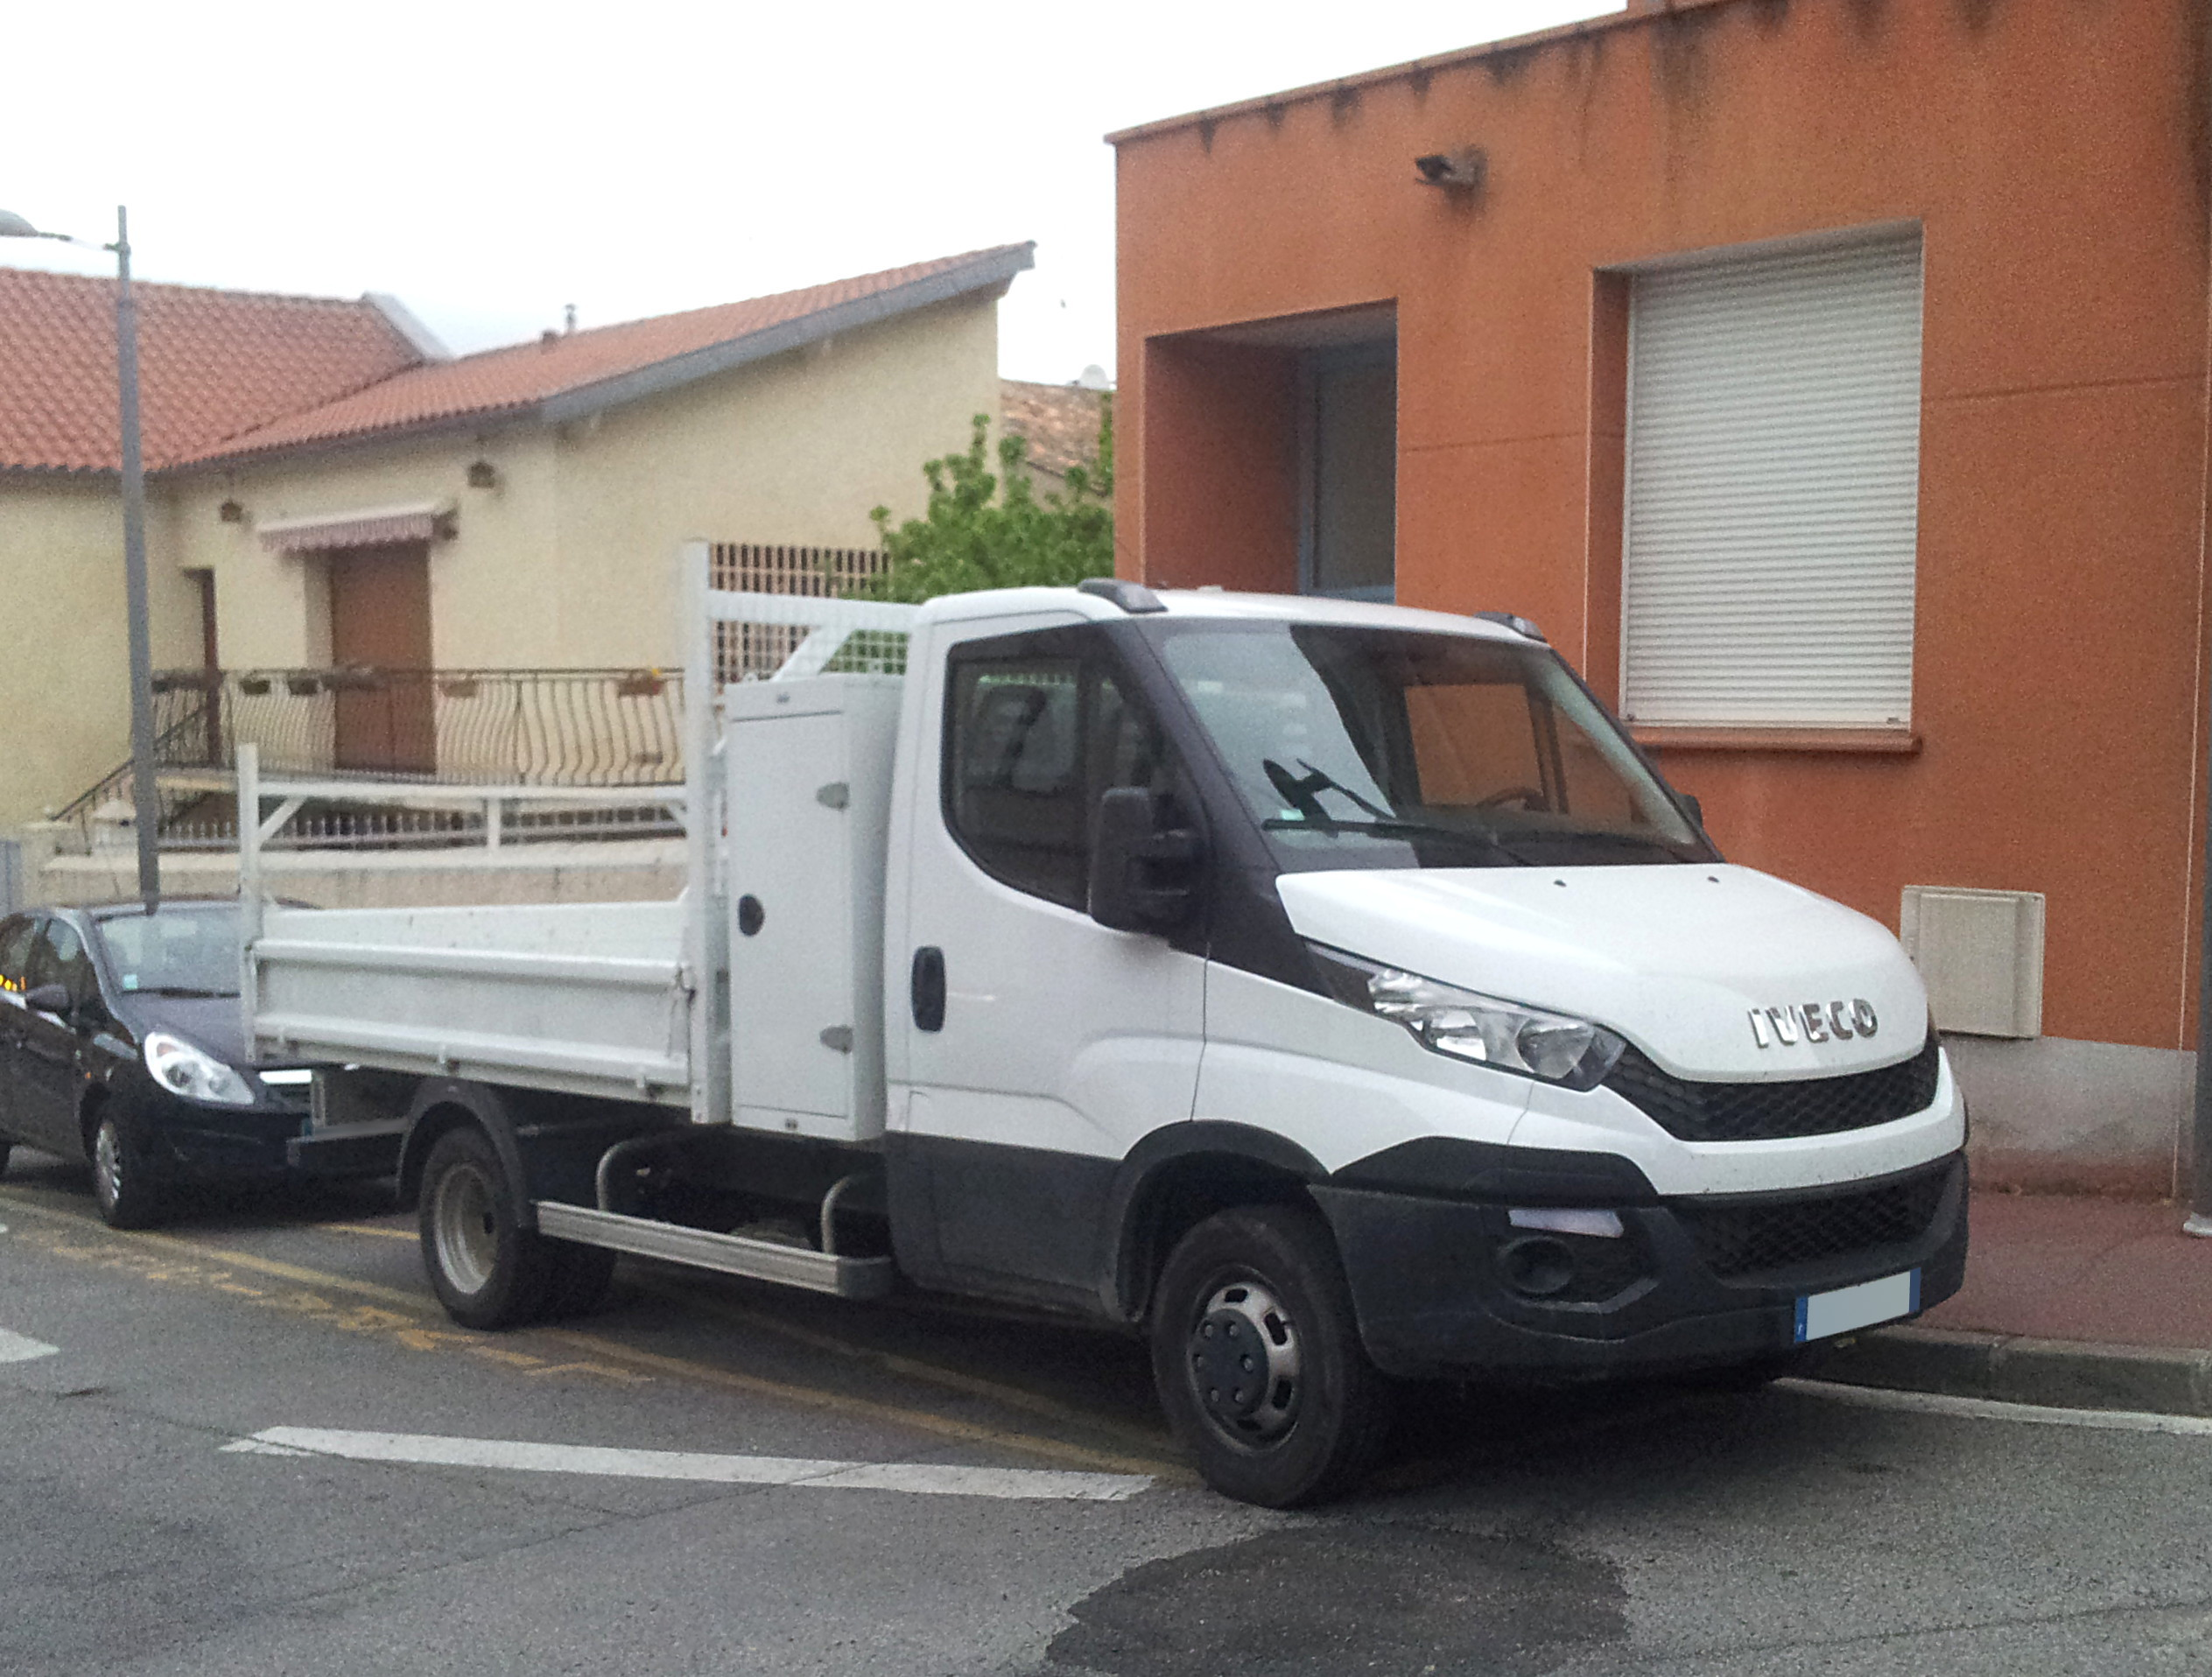 file 2015 iveco daily chassis cab wikimedia commons. Black Bedroom Furniture Sets. Home Design Ideas